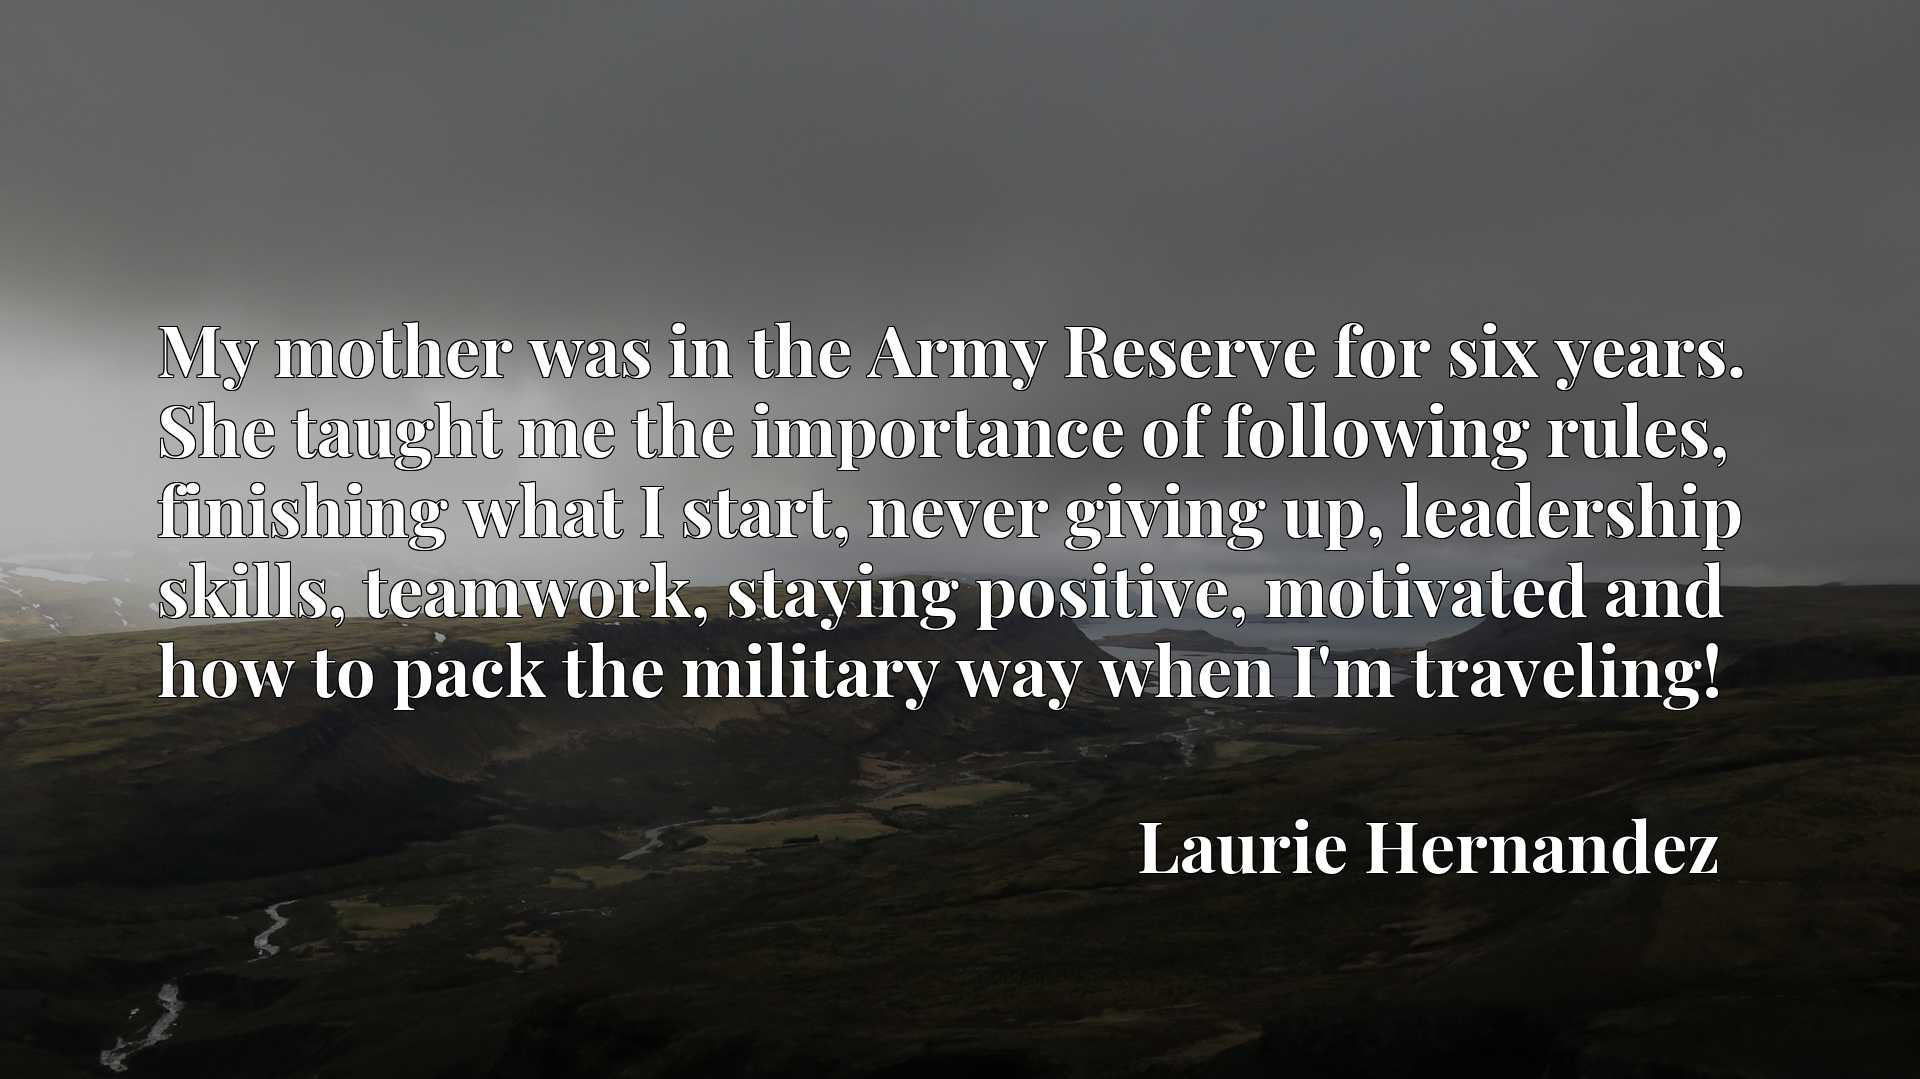 Quote Picture :My mother was in the Army Reserve for six years. She taught me the importance of following rules, finishing what I start, never giving up, leadership skills, teamwork, staying positive, motivated and how to pack the military way when I'm traveling!